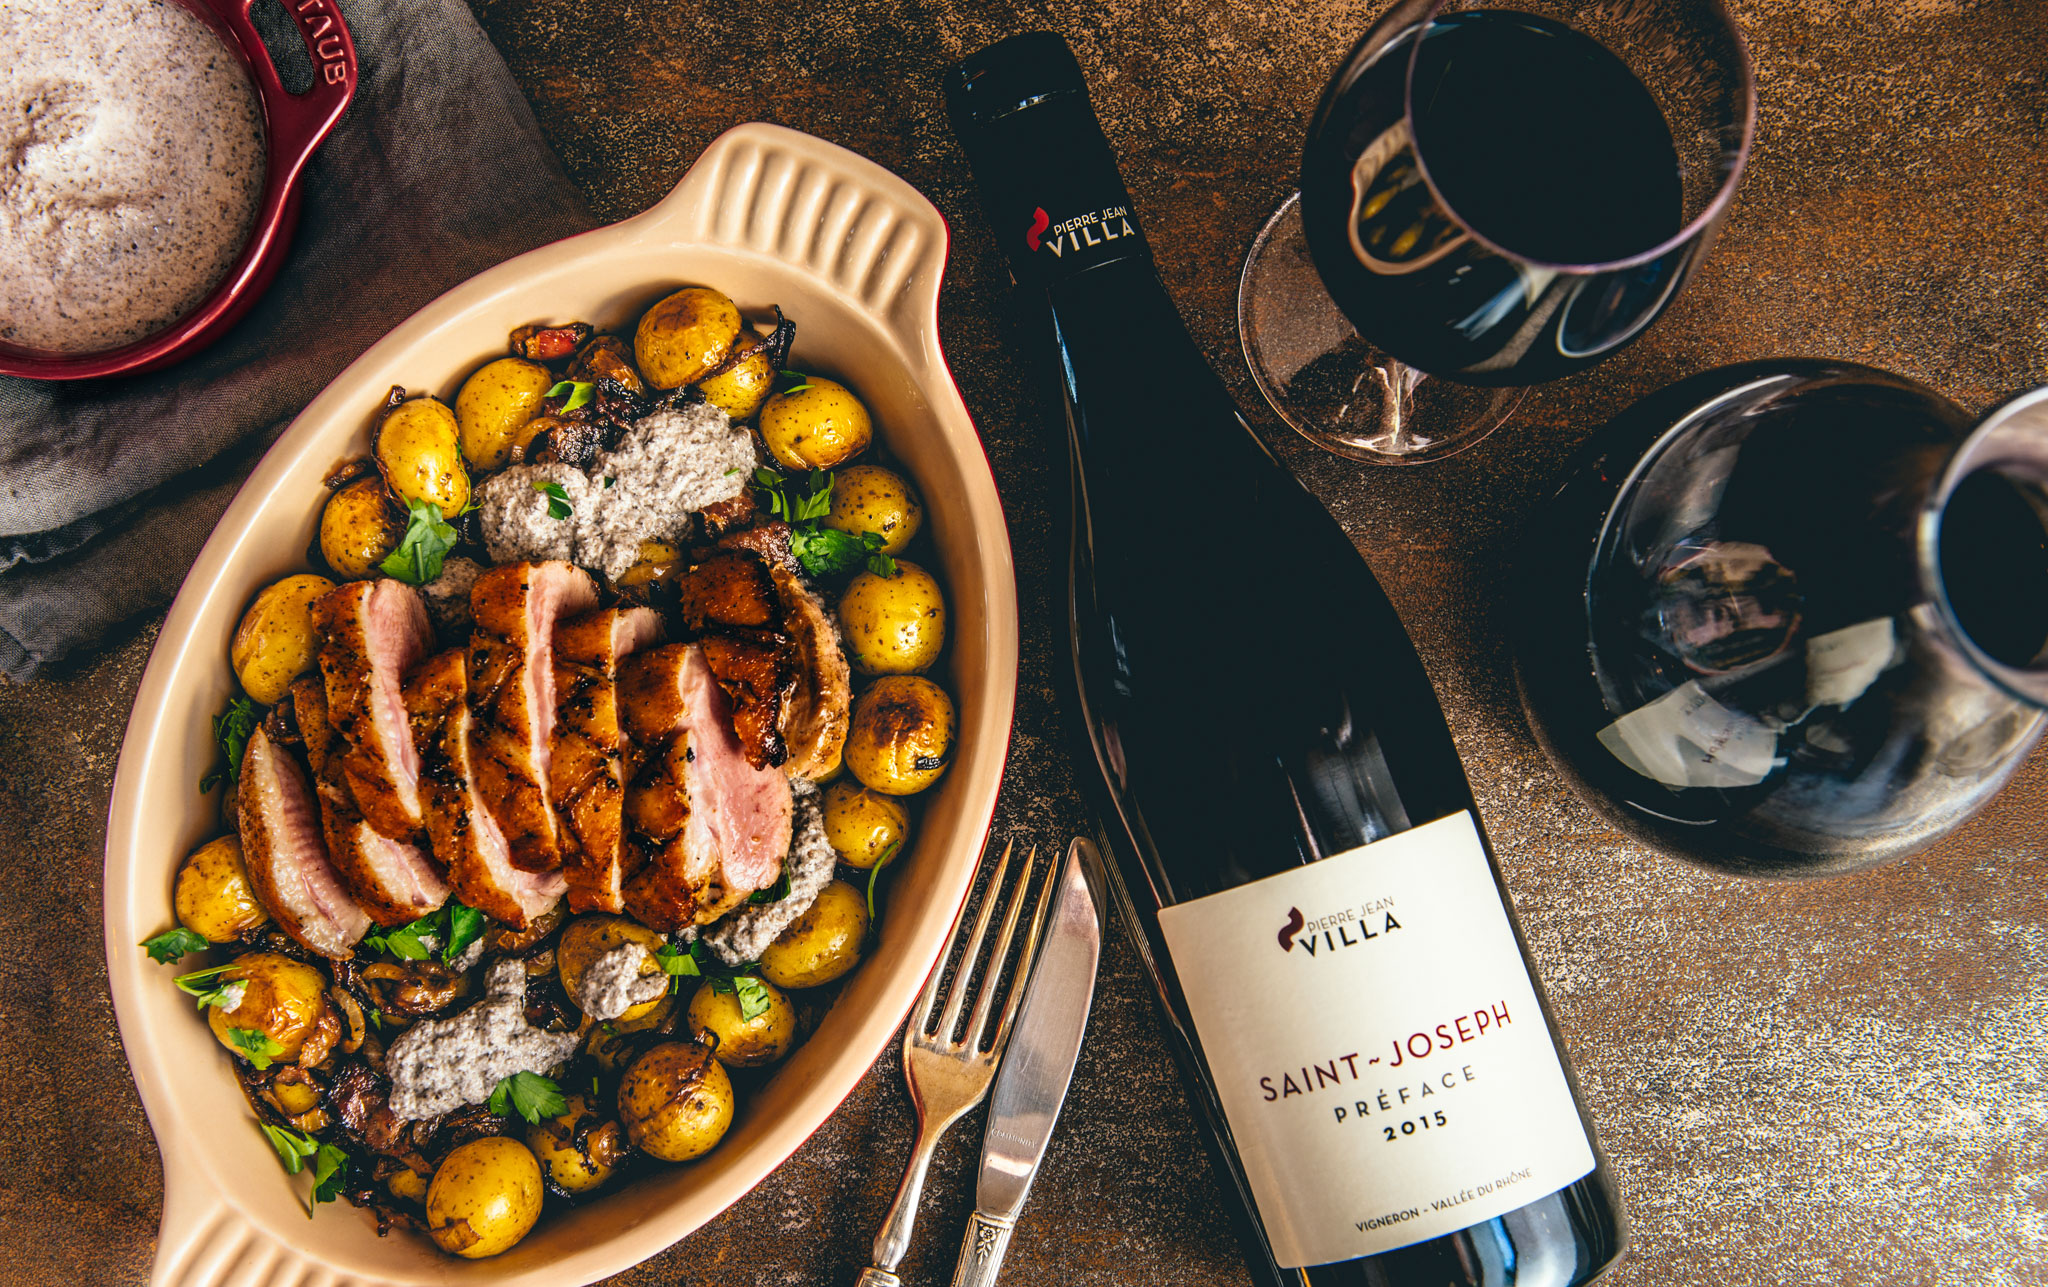 """In the spirit of the northern Rhone, France : Duck with pan-roasted potatoes, onion and bacon, mushroom cream sauce : Paired with 2015 Pierre Jean Villa's """"Preface"""" Saint-Joseph"""